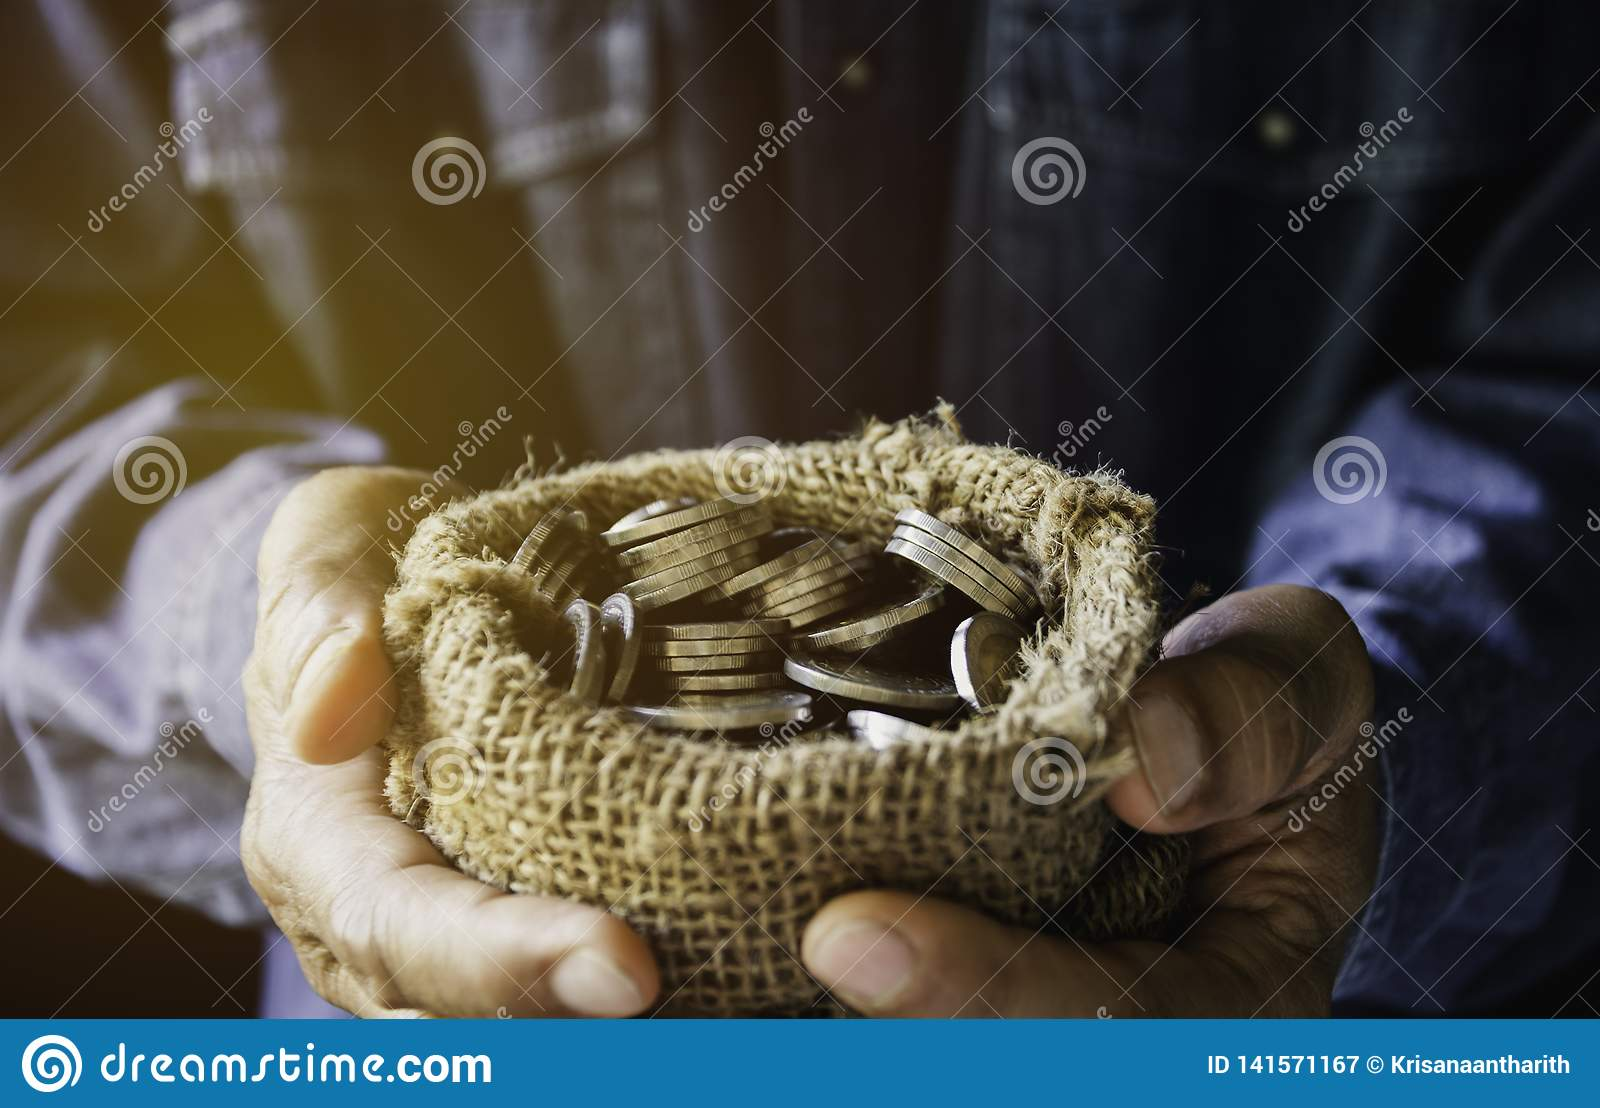 Hand holding money gold coins with plant in hand for financial and saving money concept